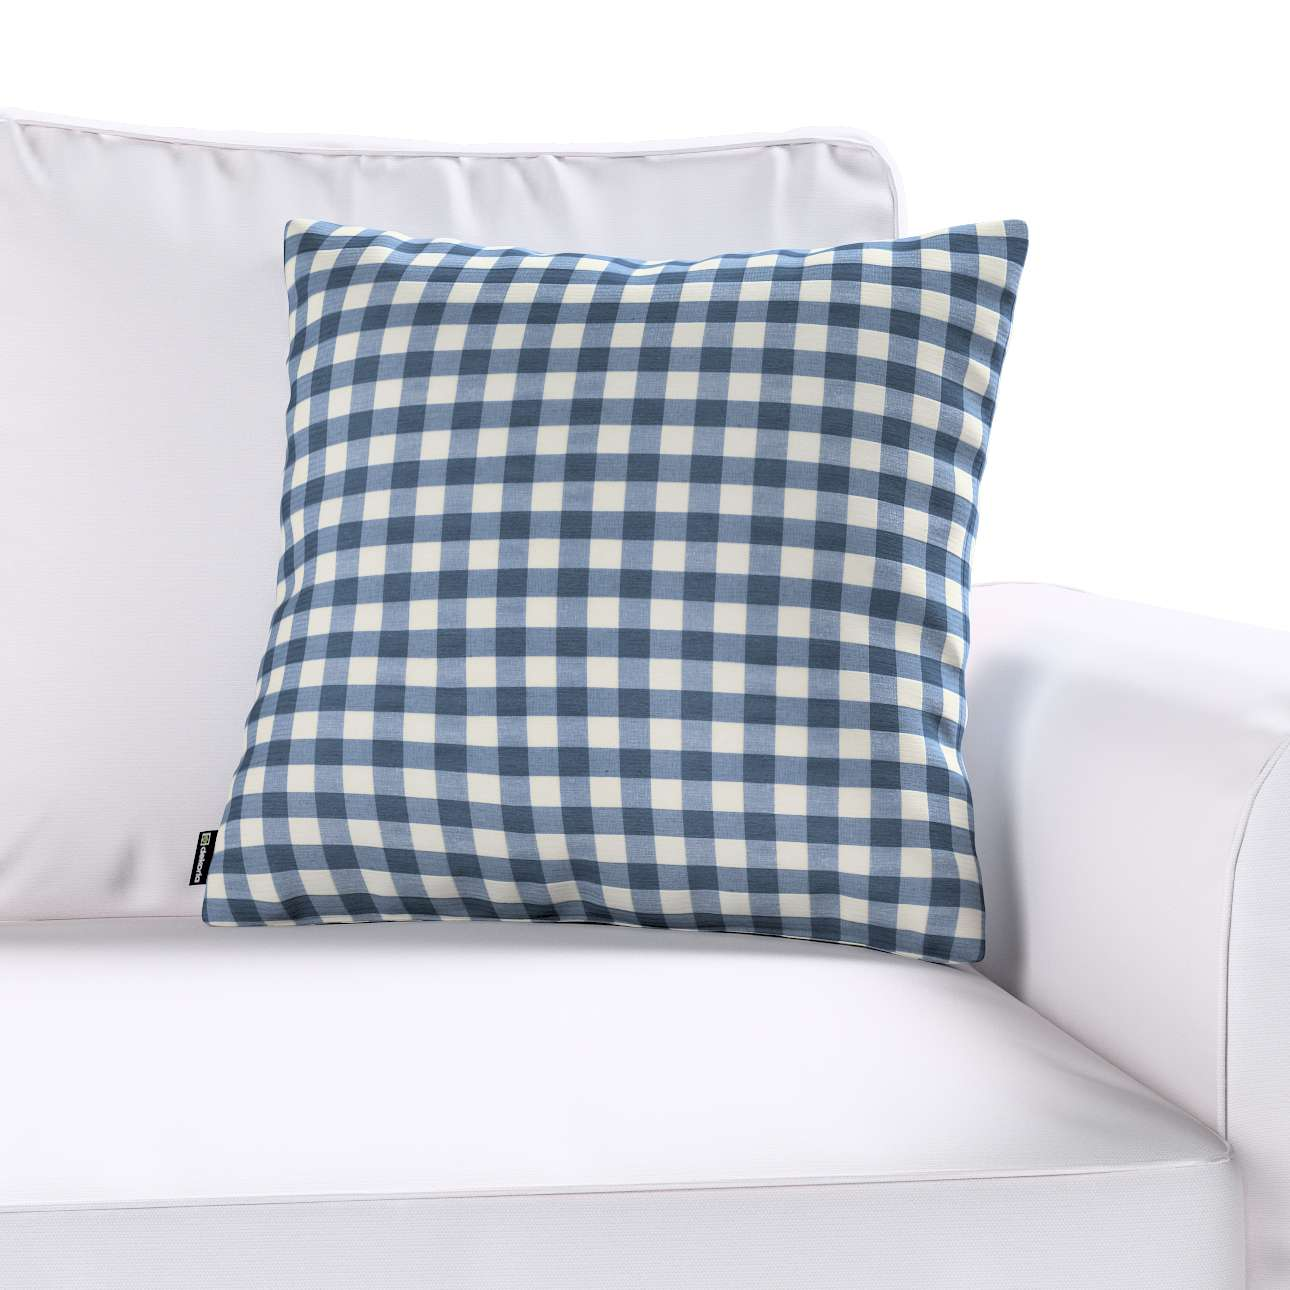 Kinga cushion cover 43 x 43 cm (17 x 17 inch) in collection Quadro, fabric: 136-01